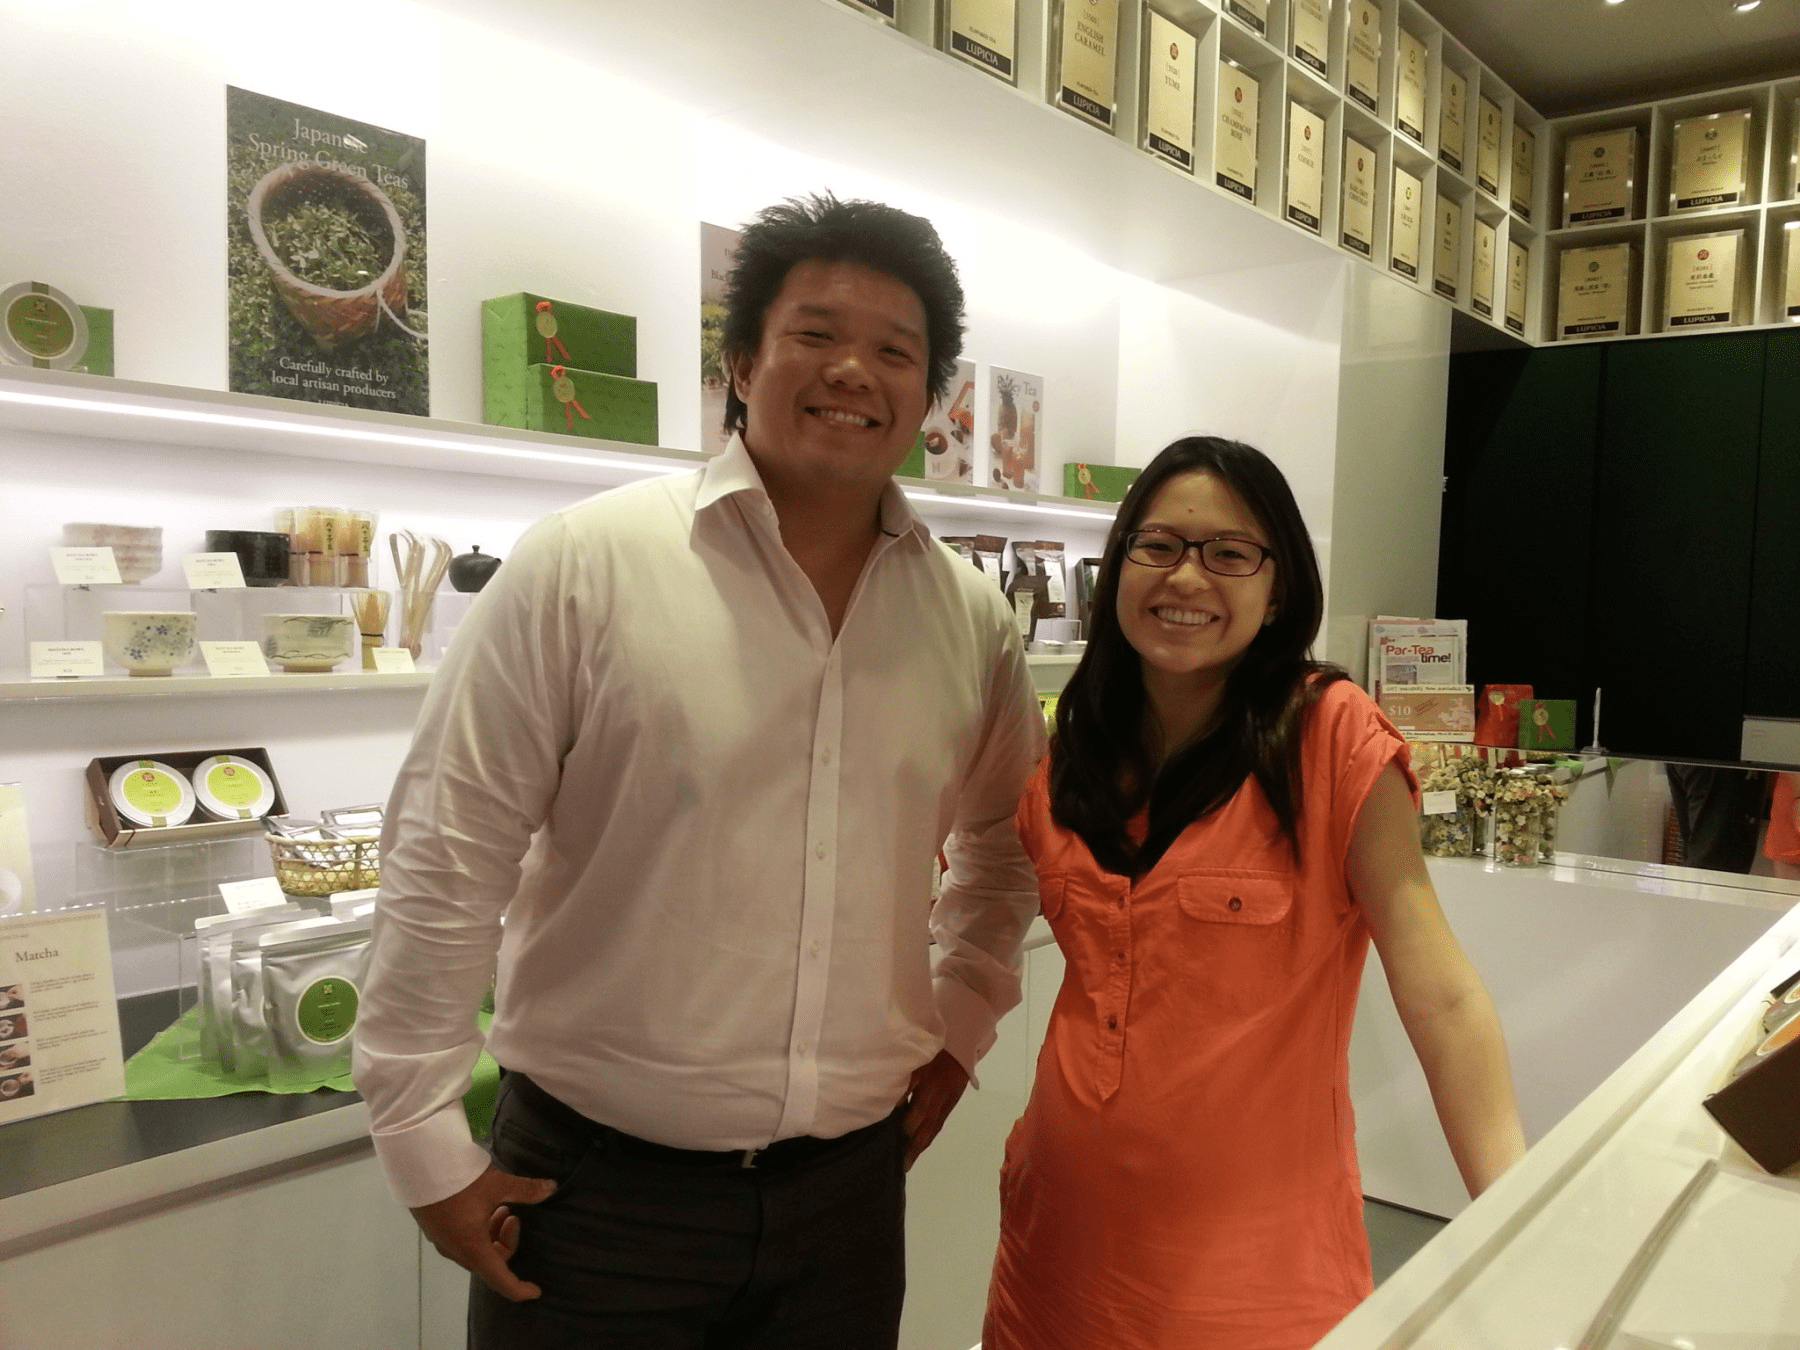 Setting up a LUPICIA store in Singapore